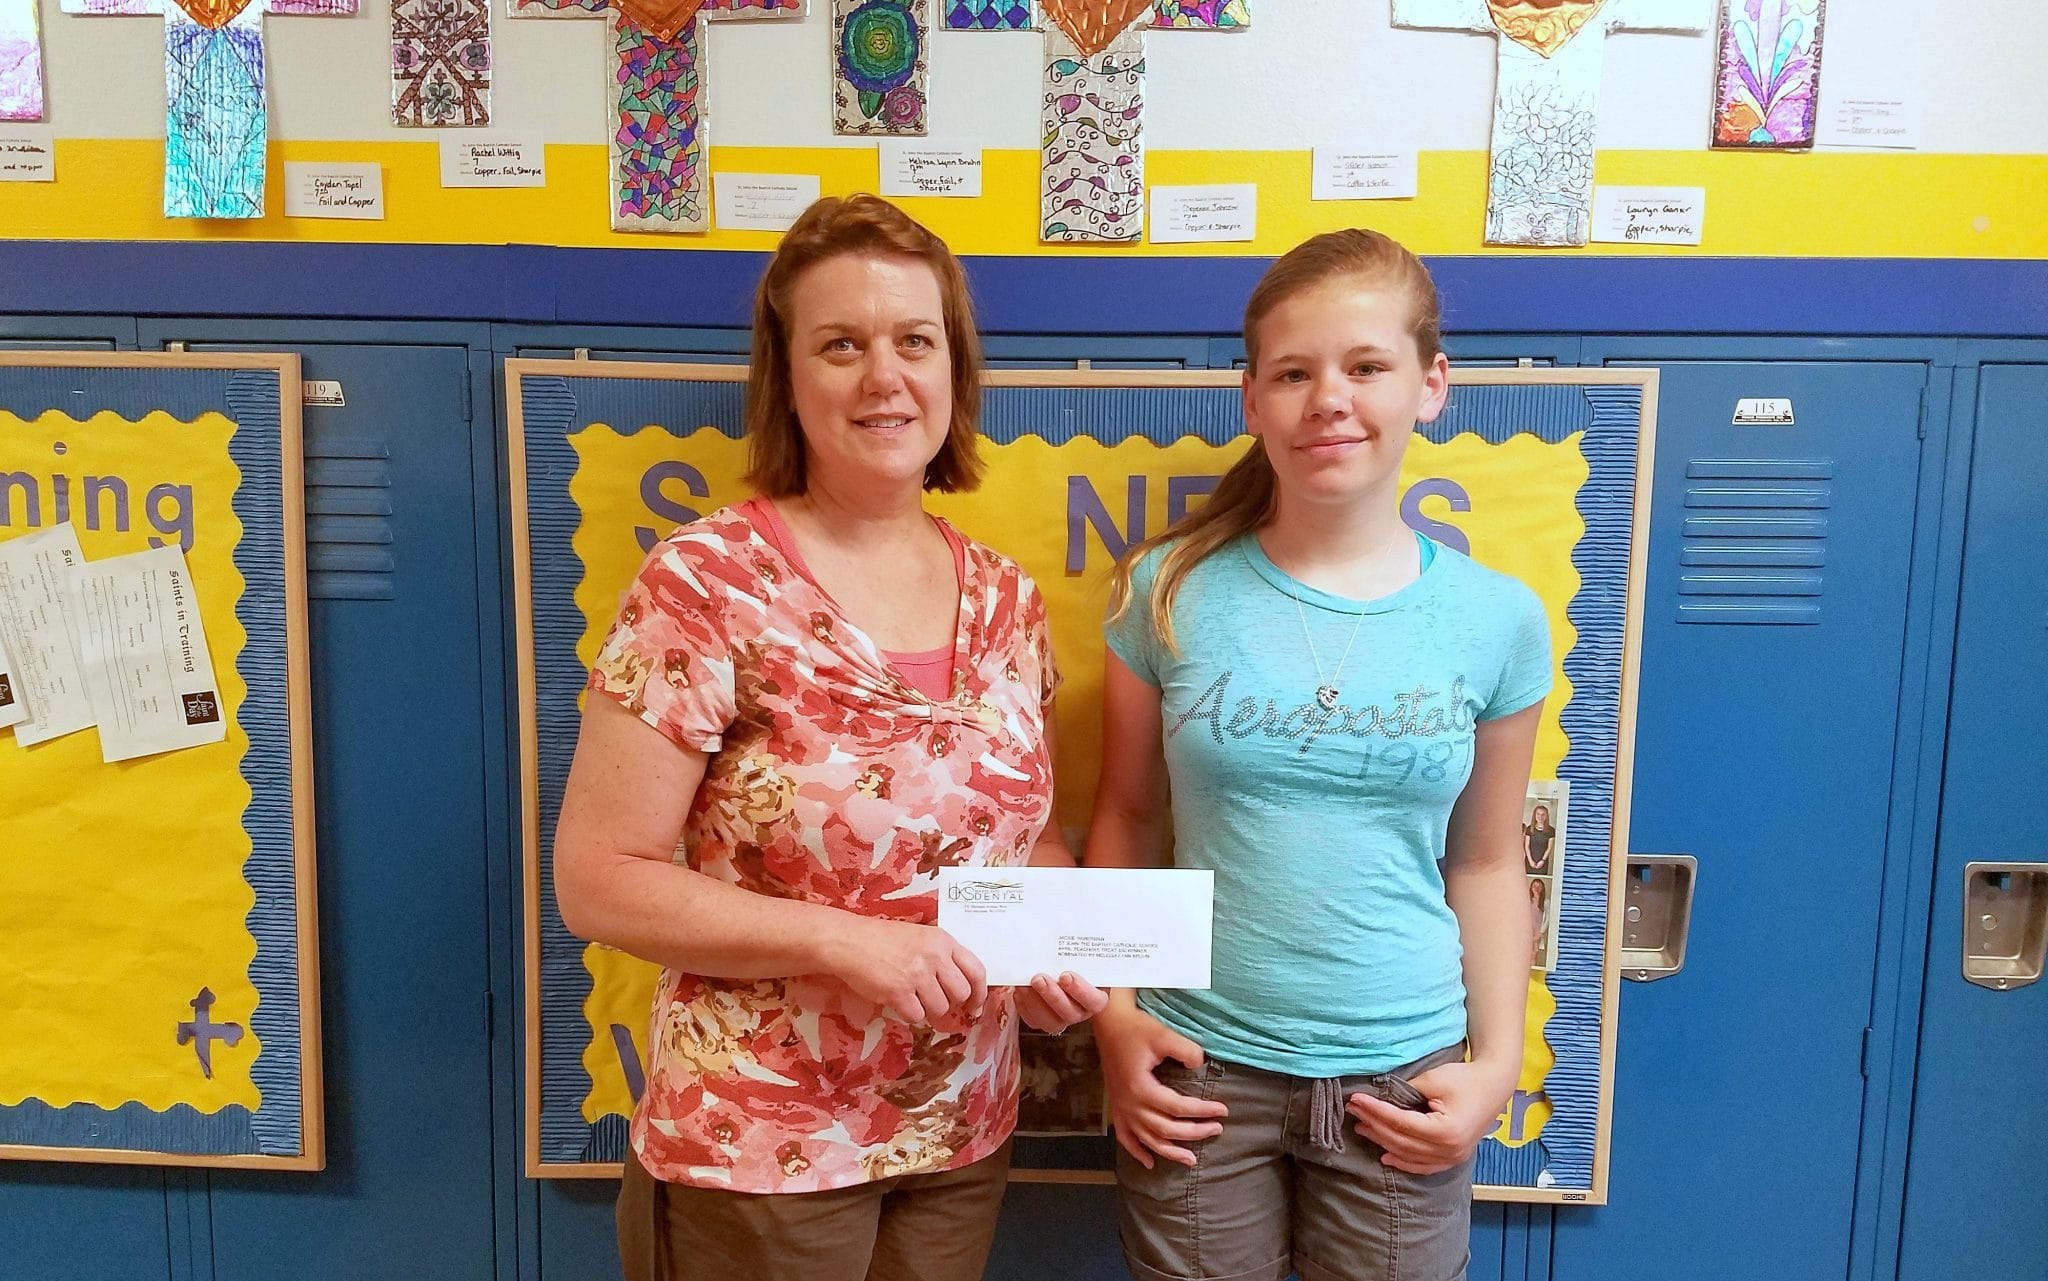 Recipient Jackie Haberman and nominating student Melissa Lyn Bruhn pose for picture holding check envelope.